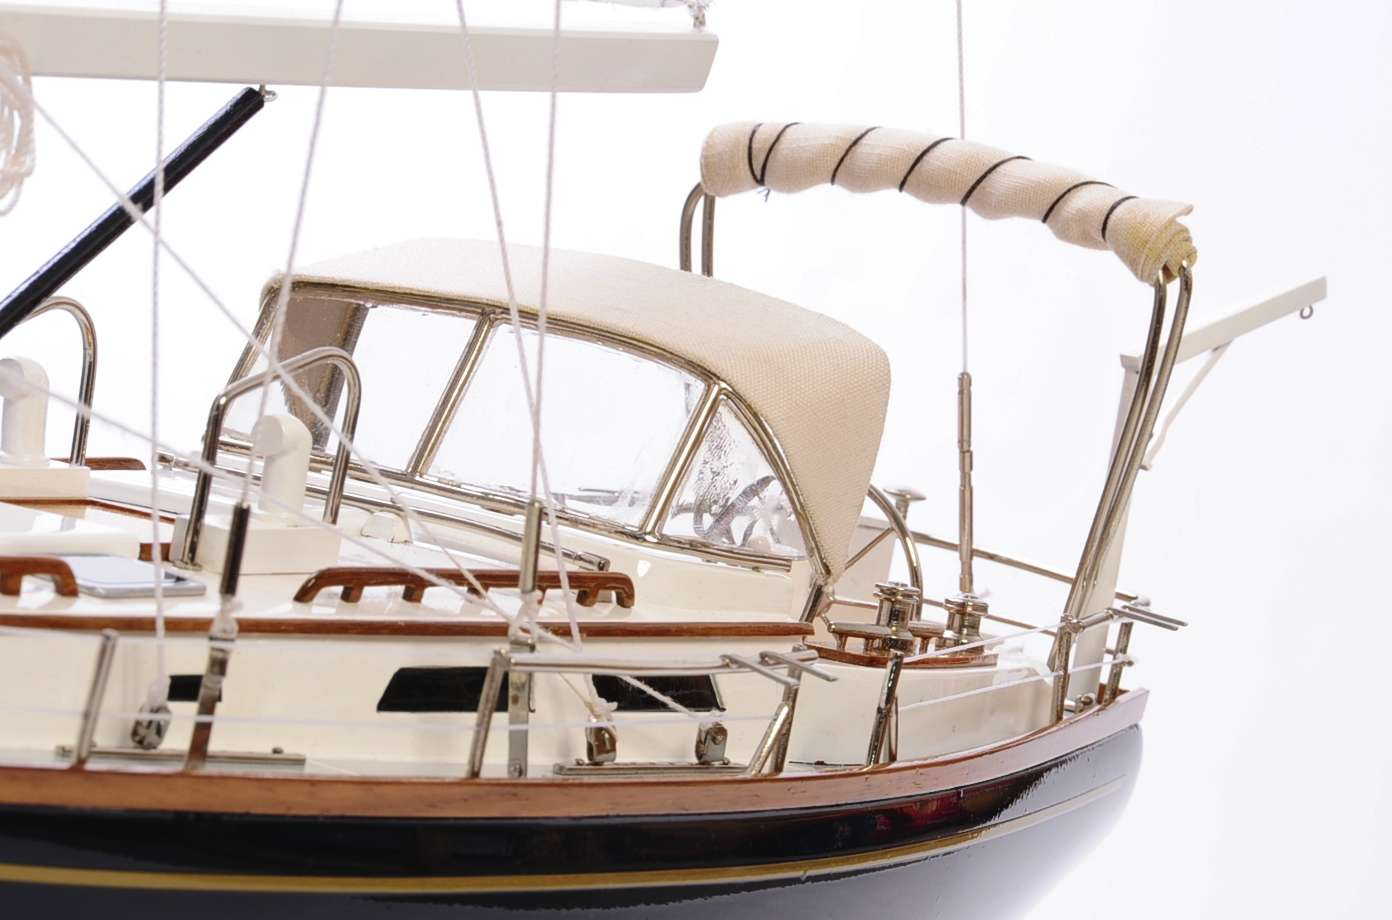 1438-4728-Indigo-Moth-Model-Yacht